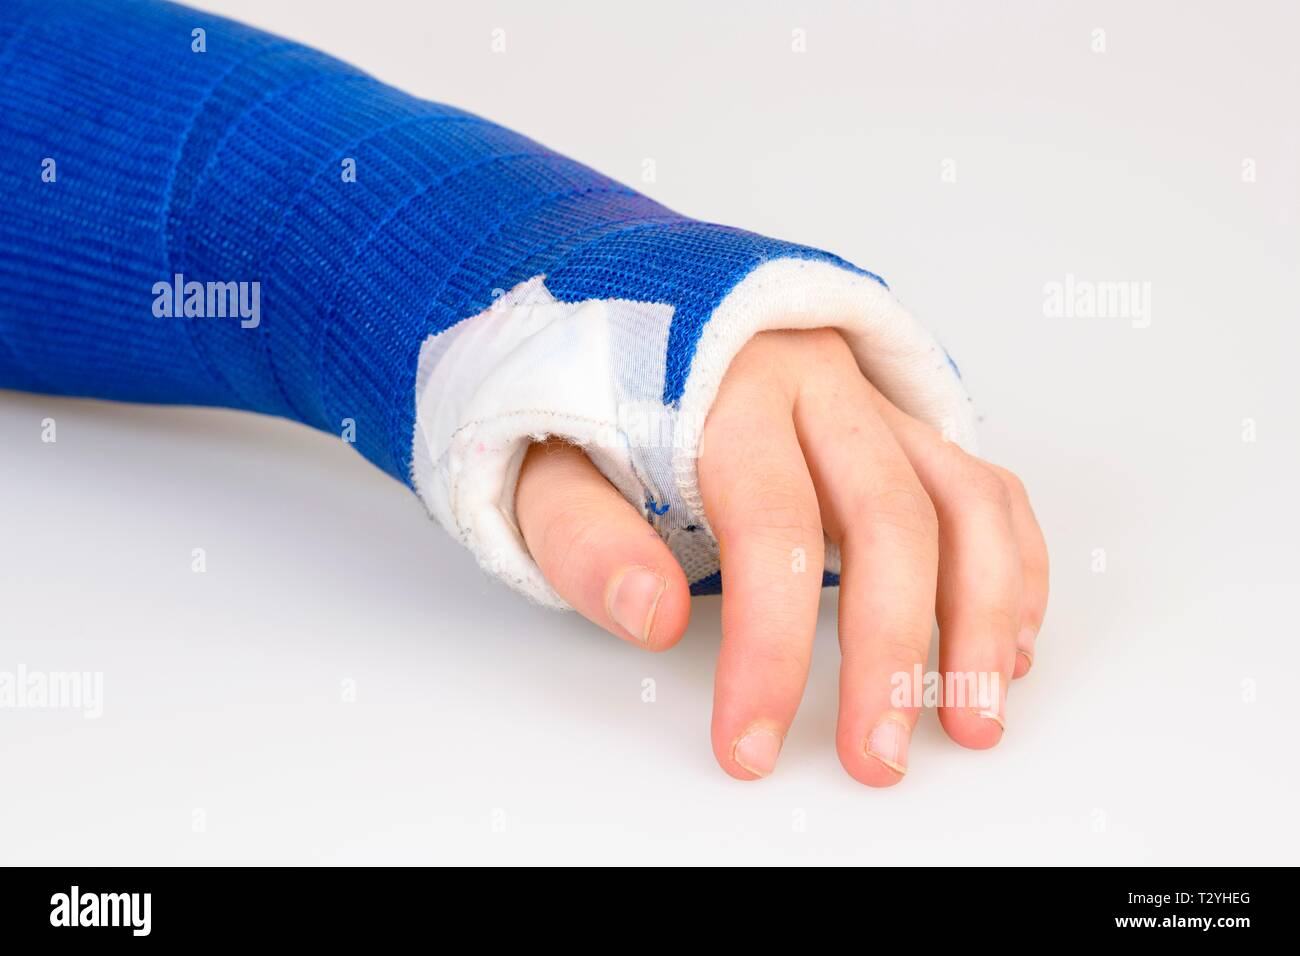 Symbol picture, wrist with plaster cast, Germany Stock Photo